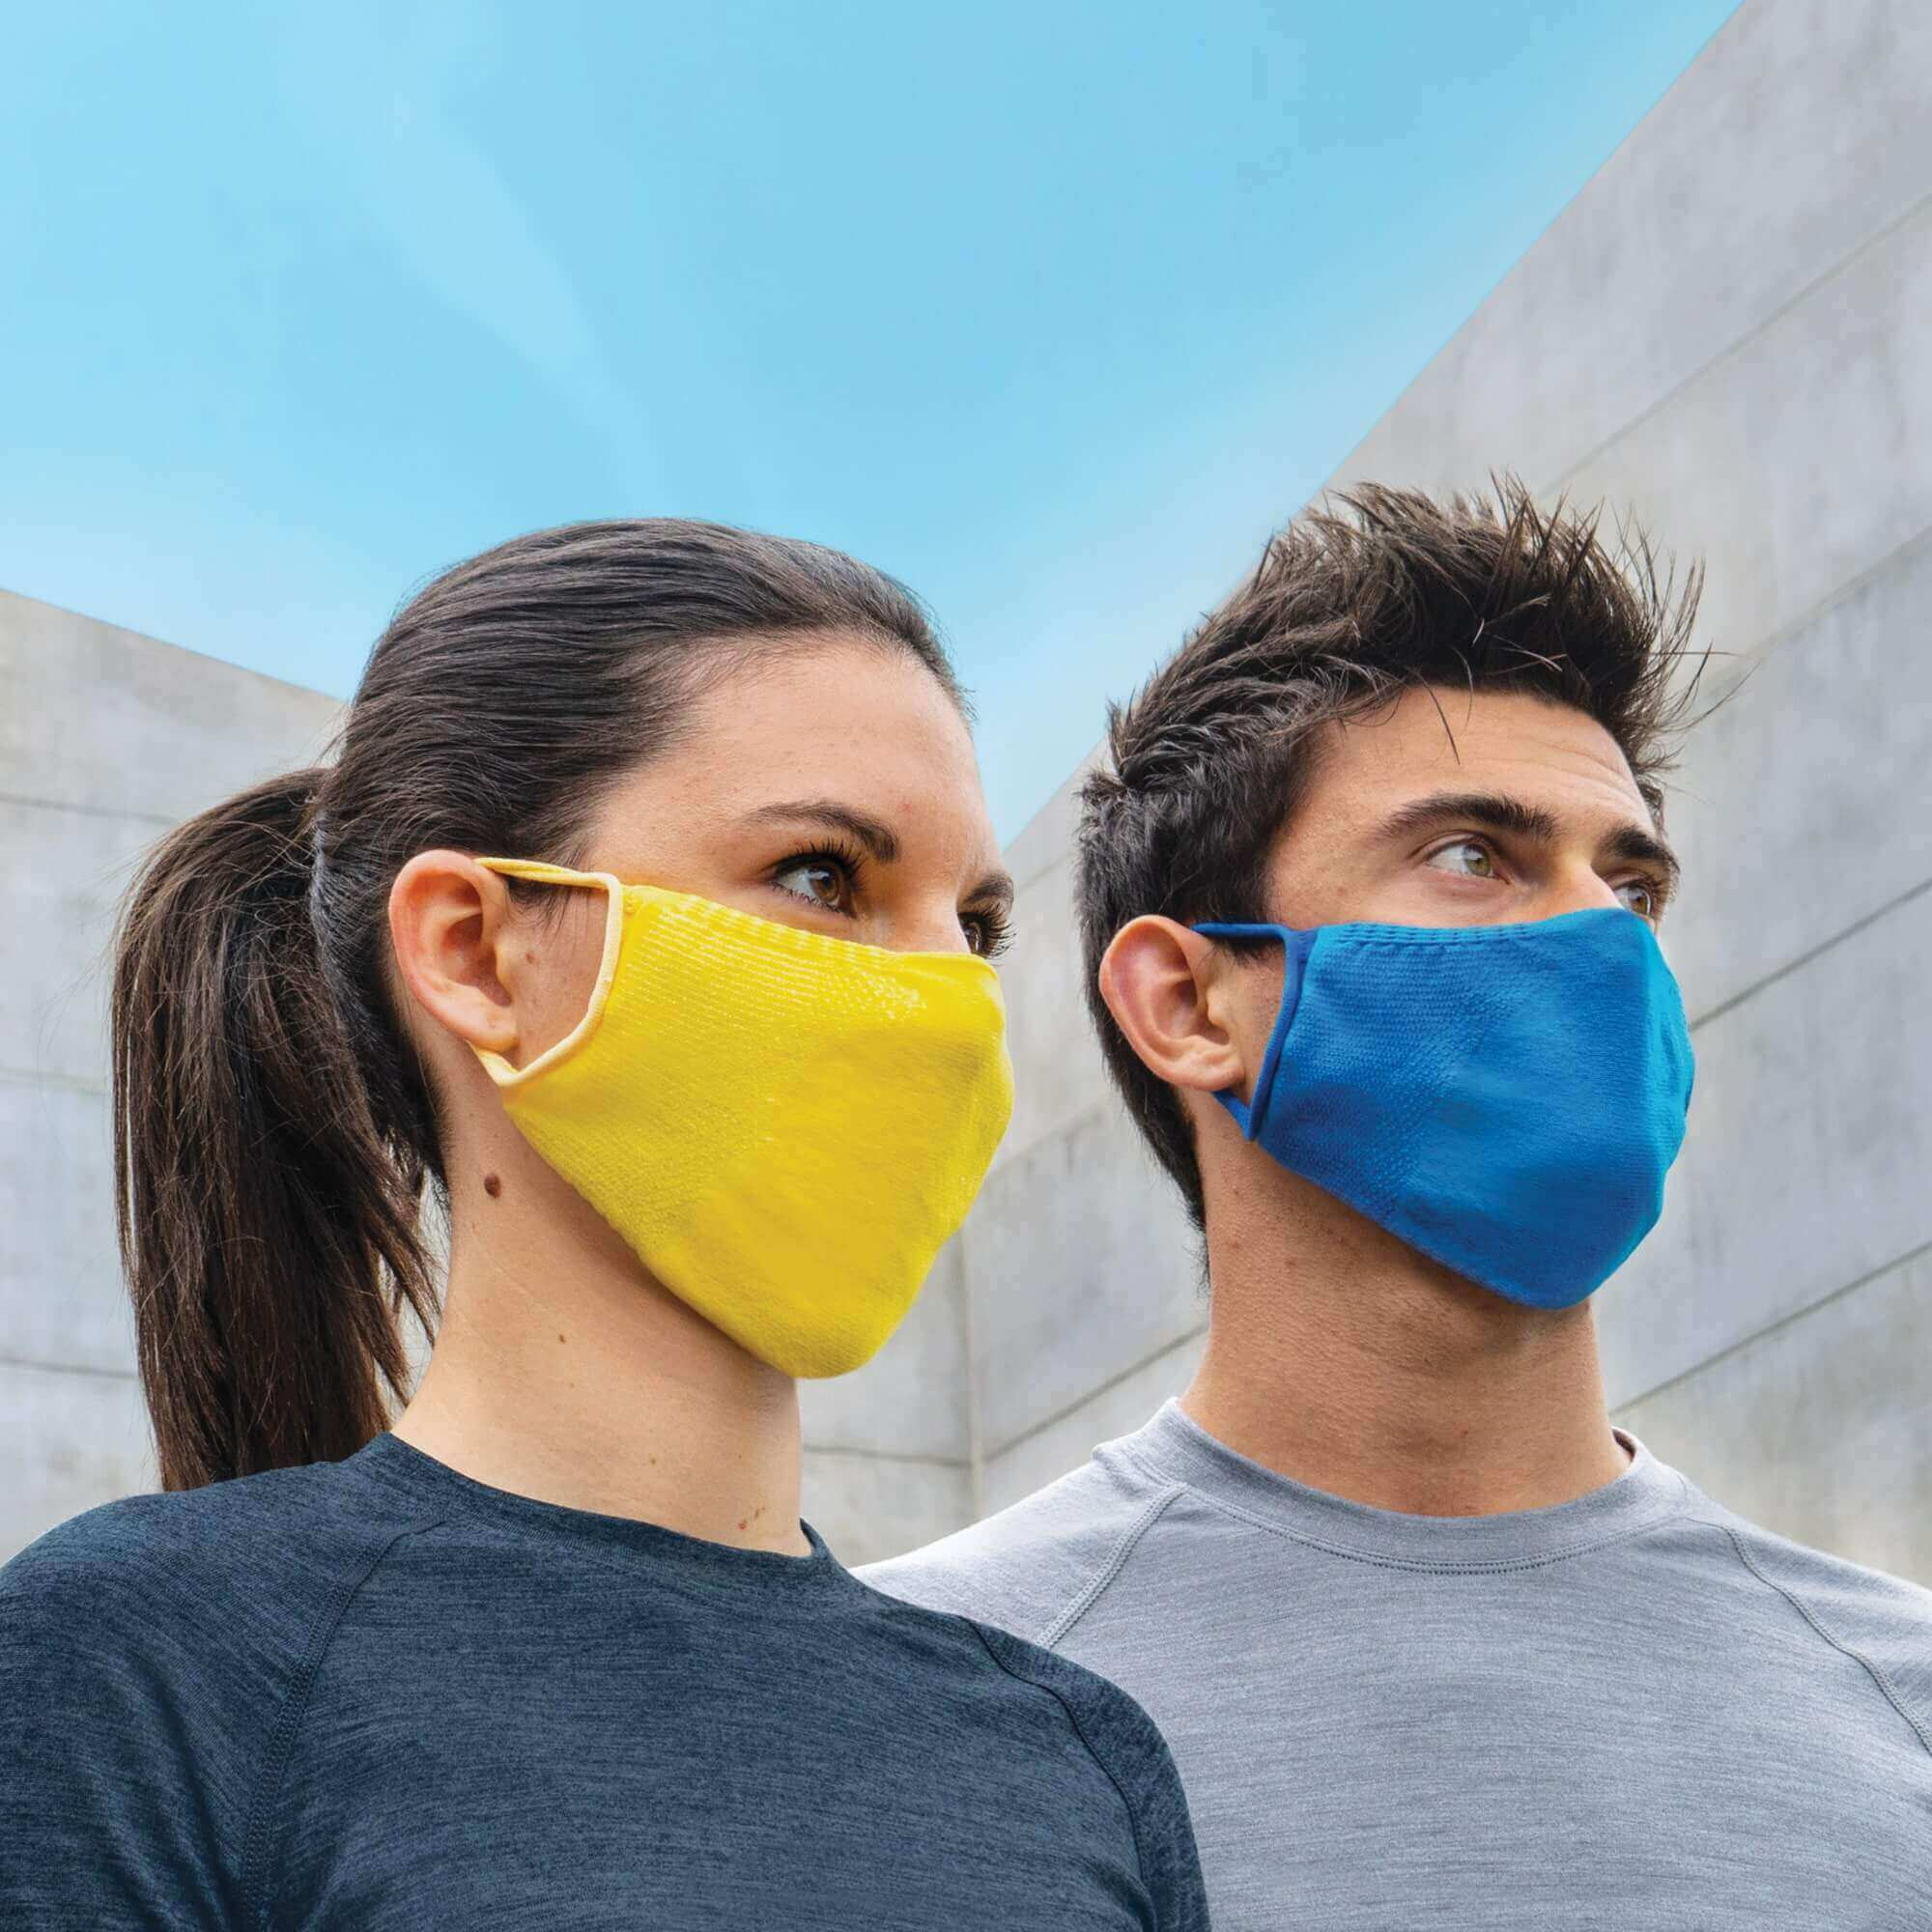 Is Running with a Mask Safe - Blog Decathlon